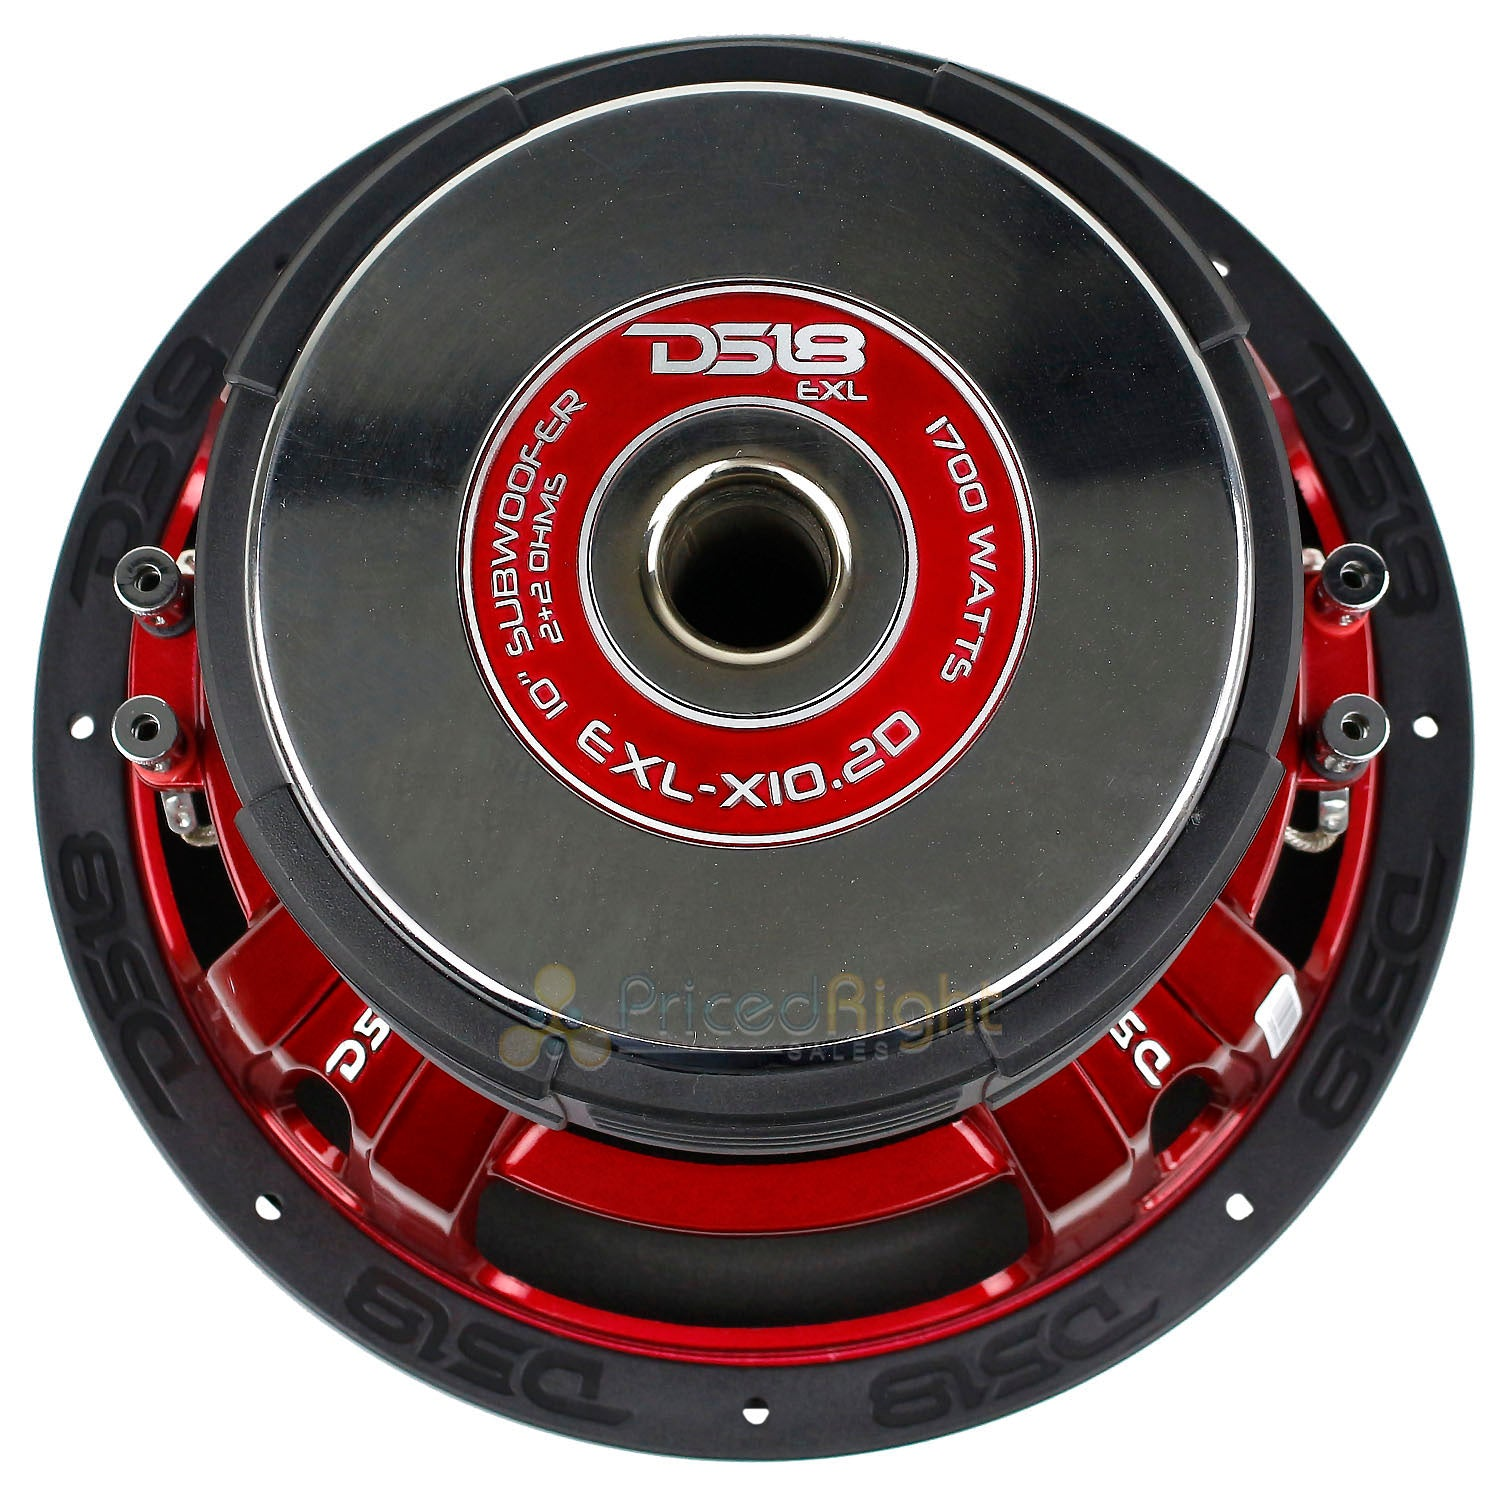 "2 Pack EXL-X10.2D 10"" Subwoofers Dual 2 Ohm 1700 Watts Max Bass Sub Car DS18"